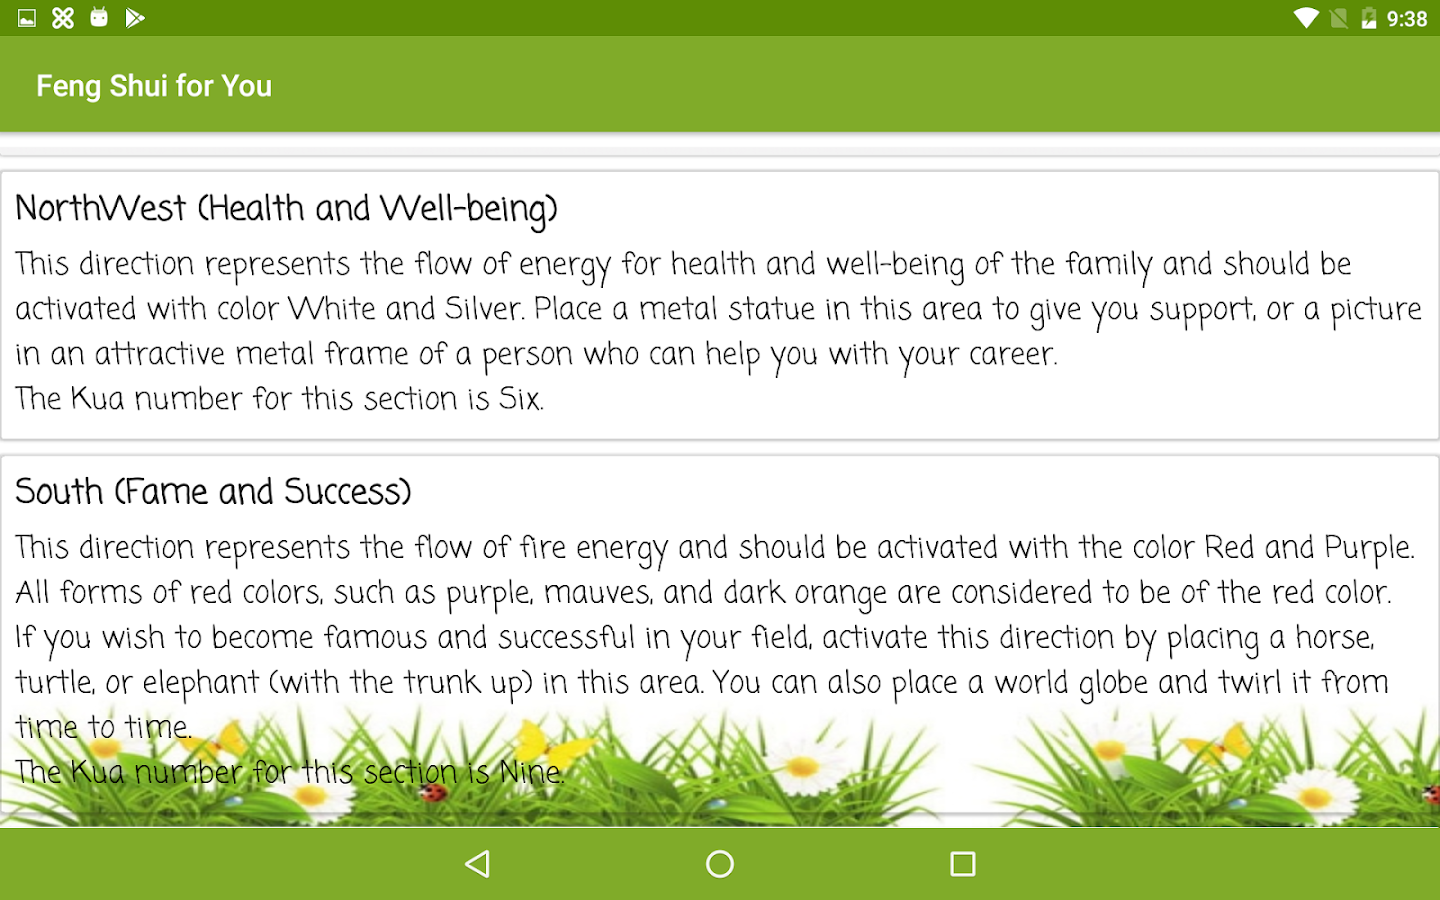 feng shui for you android apps on google play feng shui for you screenshot